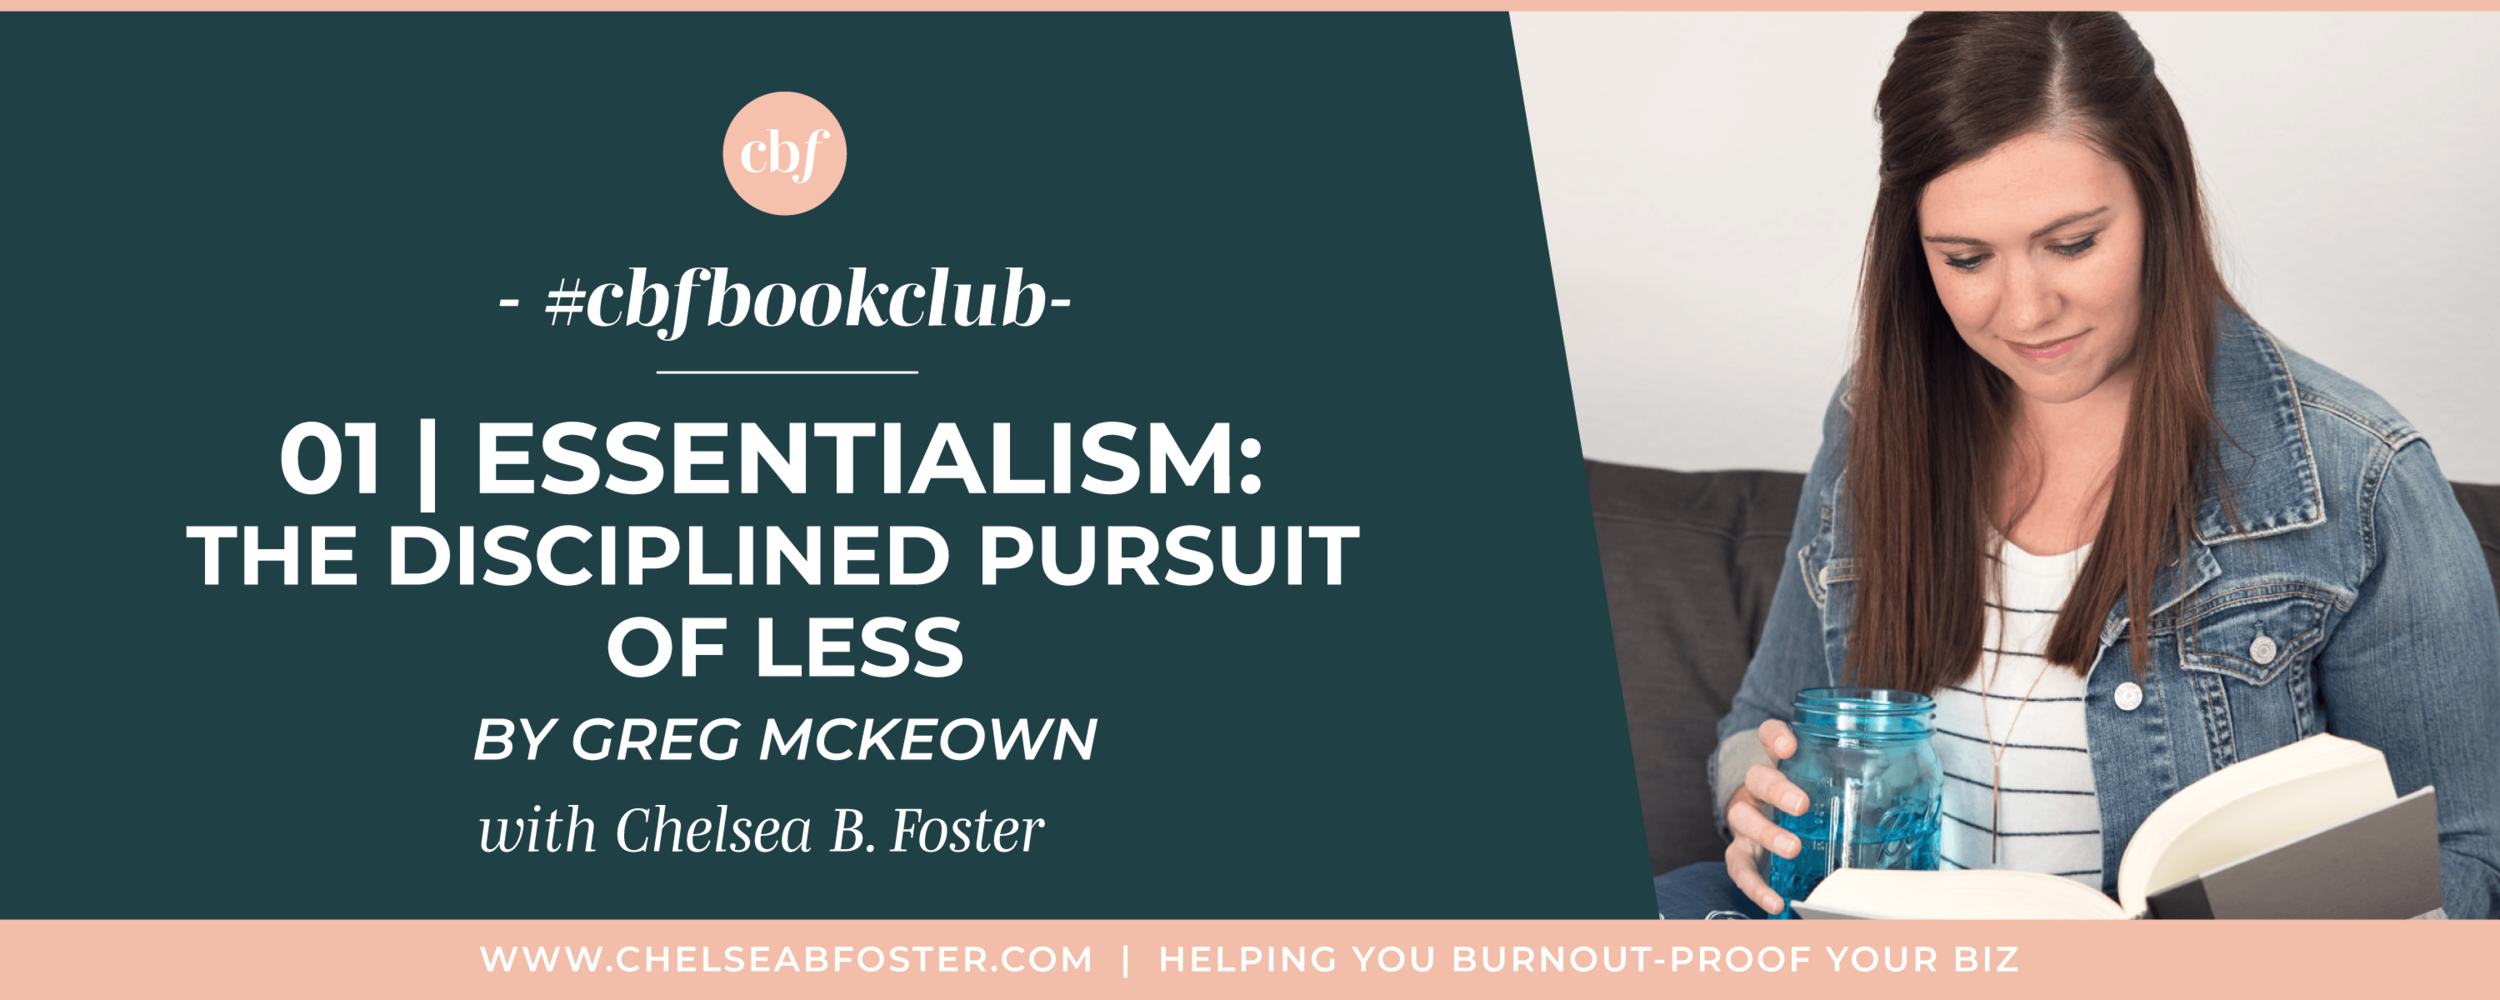 Burnout-Proof Your Biz with Chelsea B Foster | #cbfbookclub - Essentialism: The Disciplined Pursuit of Less by Greg McKeown. Download your reading guide now at www.chelseabfoster.com/cbfbookclub  ||  Burnout-Proof Your Business | Workflow & Productivity Specialist | Reading Guide | Books for Business | Doing More with Less | FOMO | Meaning of Success | Essentialism | Knowing What's Important | Letting go of clutter | Narrowing Down Your Focus | Niching Down | Mindset  practicing essentialism in your life and business, getting rid of clutter | doing more by doing less | knowing what's important | letting go of FOMO, fear of missing out, learning to eliminate stress as an entrepreneur, preventing burnout in your biz, honoring yourself, business tips for multi-passionate creatives, chelsea b foster, women who podcast, female podcaster, doing the work, mindfulness